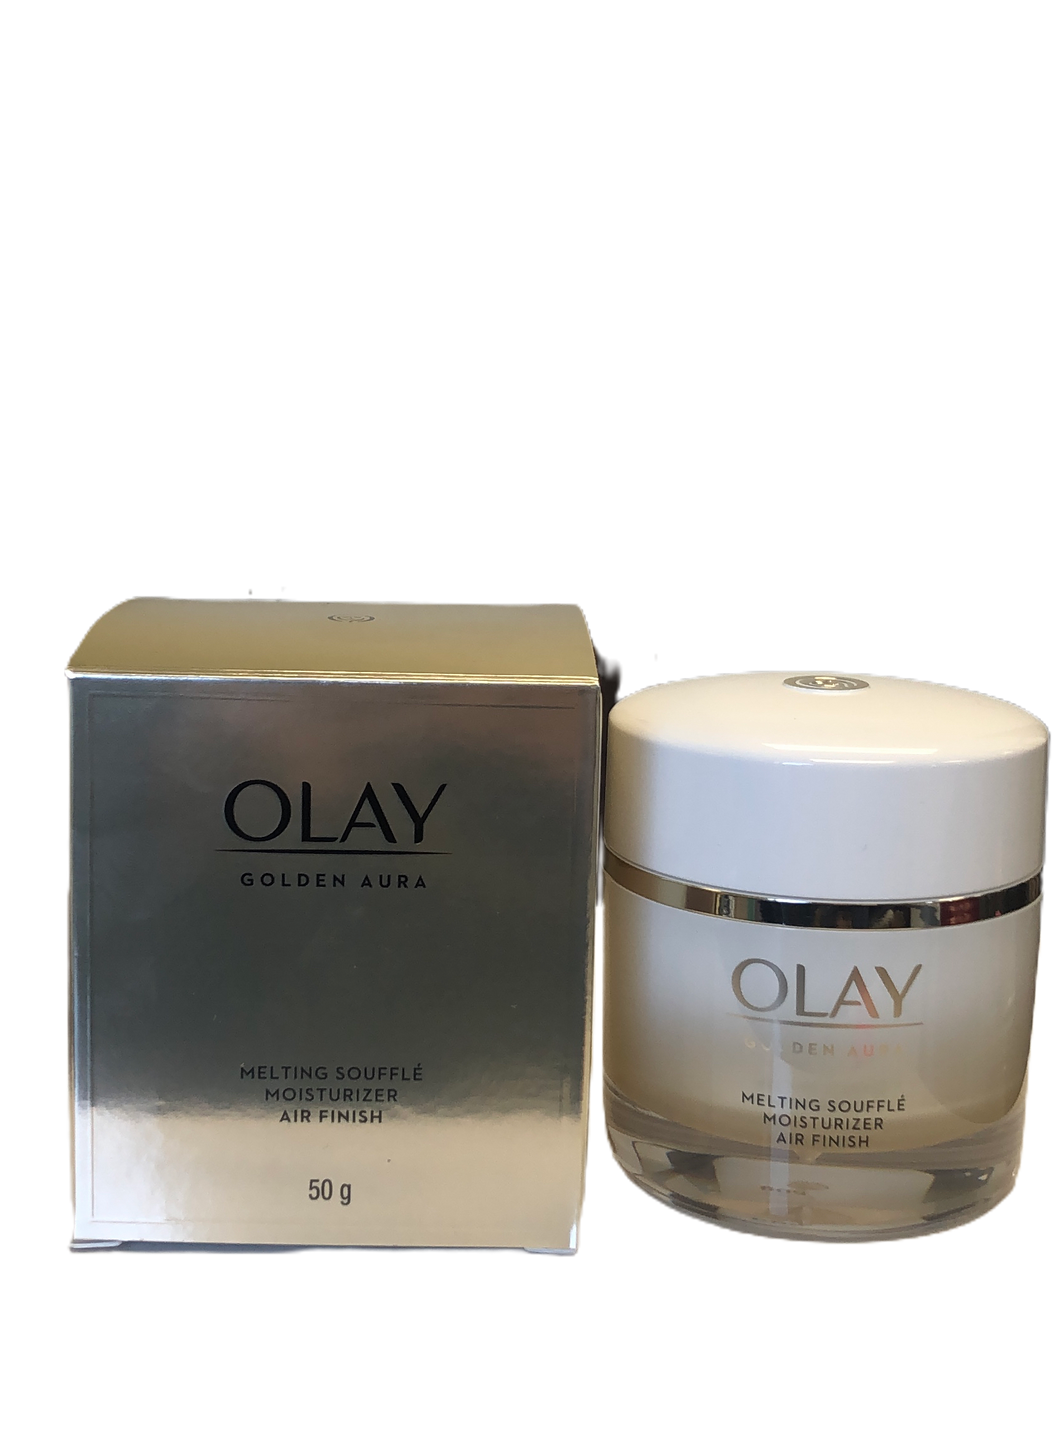 Olay Golden Aura Melting Soufflé Moisturizer Air Finish 50 g